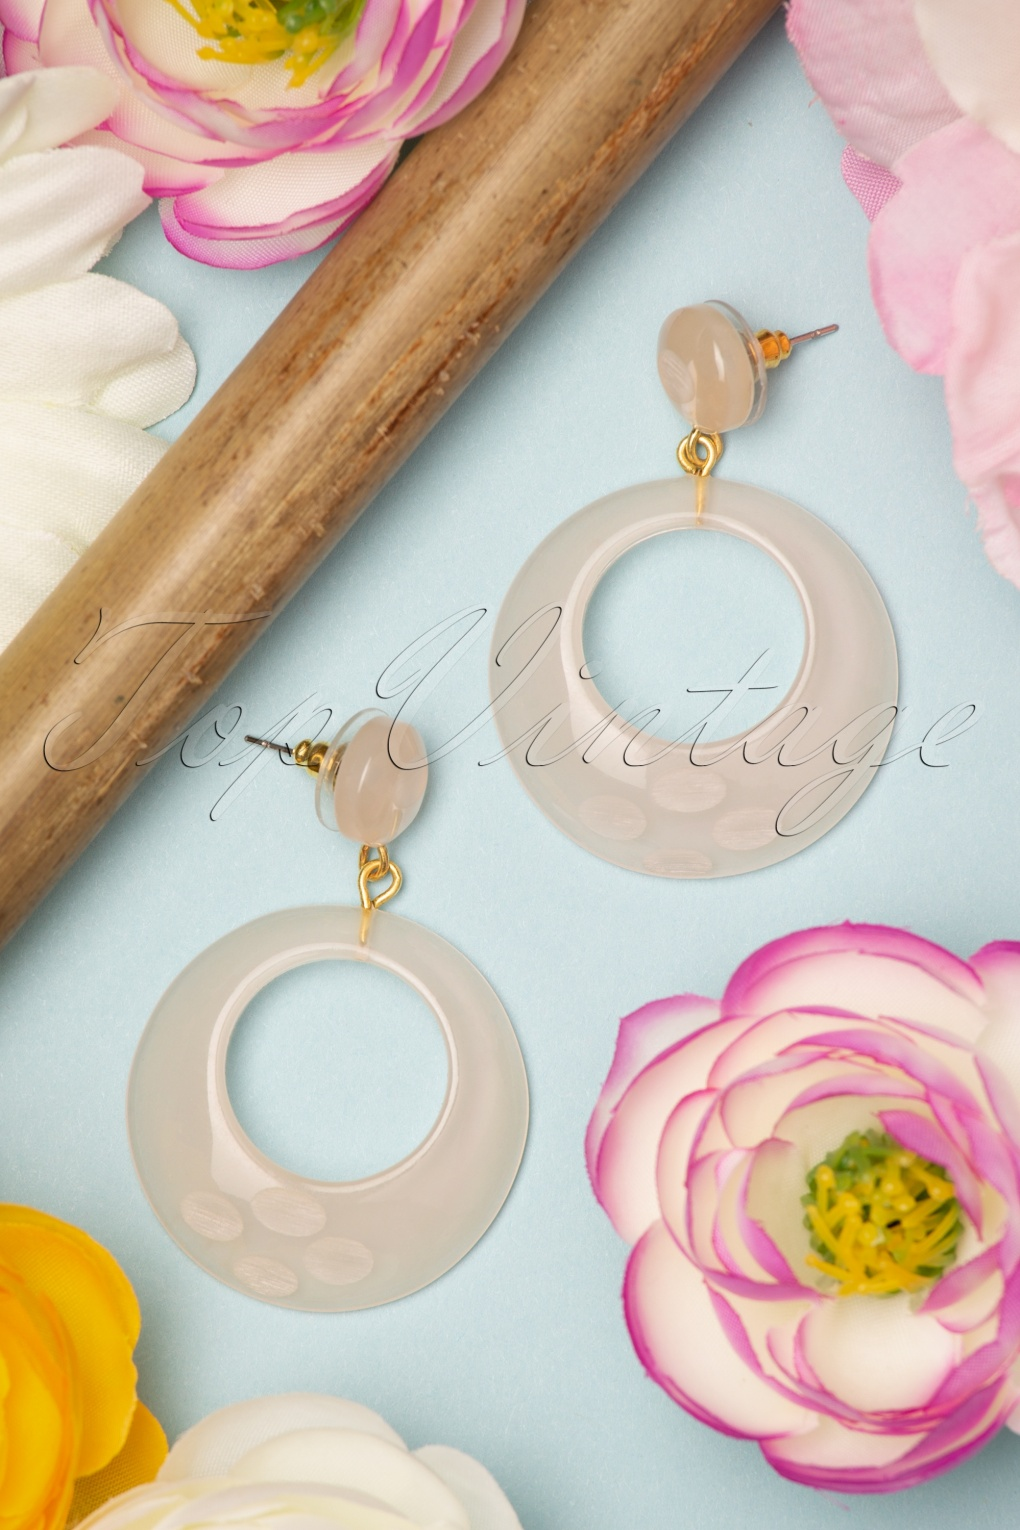 1950s Jewelry Styles and History TopVintage Exclusive  50s Coconut Fakelite Drop Hoop Earrings in Milky Off White £11.60 AT vintagedancer.com